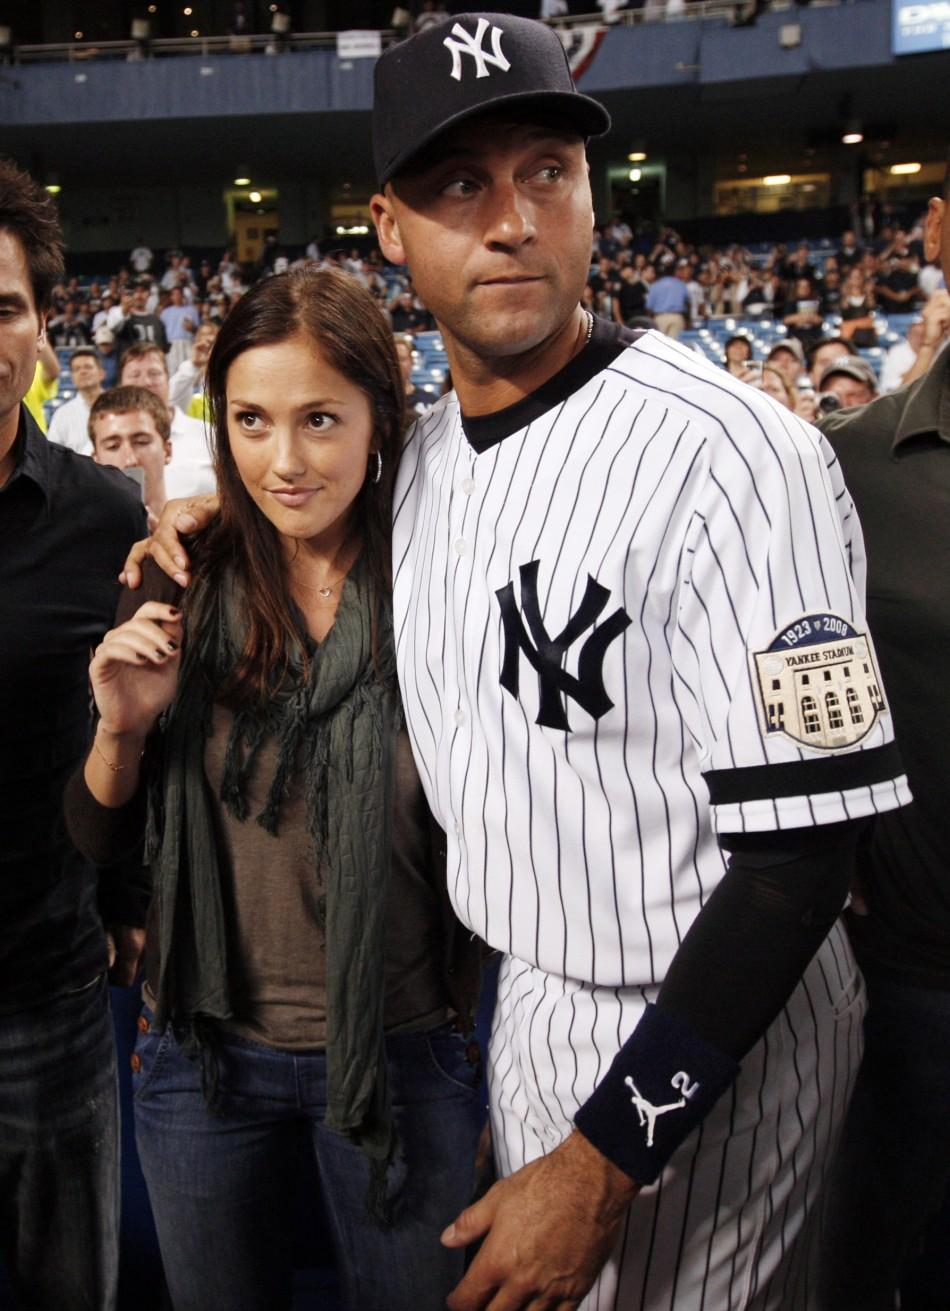 Jeter walks with girlfriend Kelly at Yankee Stadium after final game